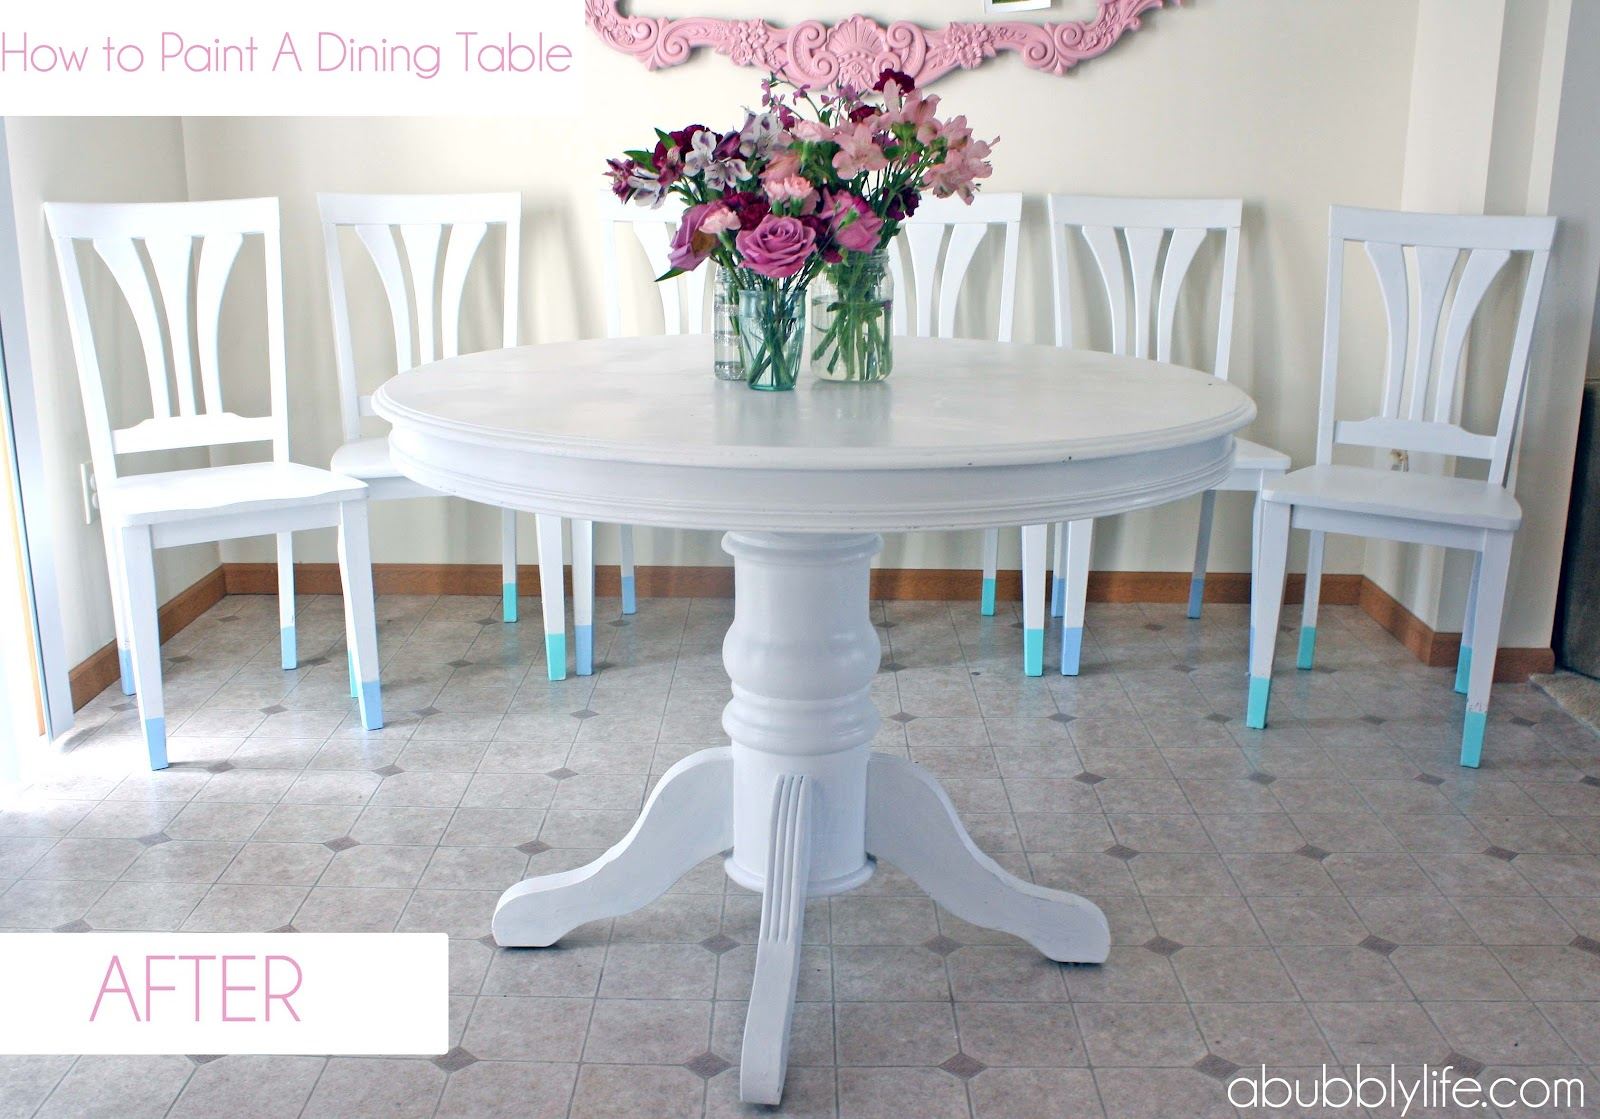 how to paint dining table chairs kitchen tables sets How to Paint a Dining Room Table Chairs Makeover Reveal